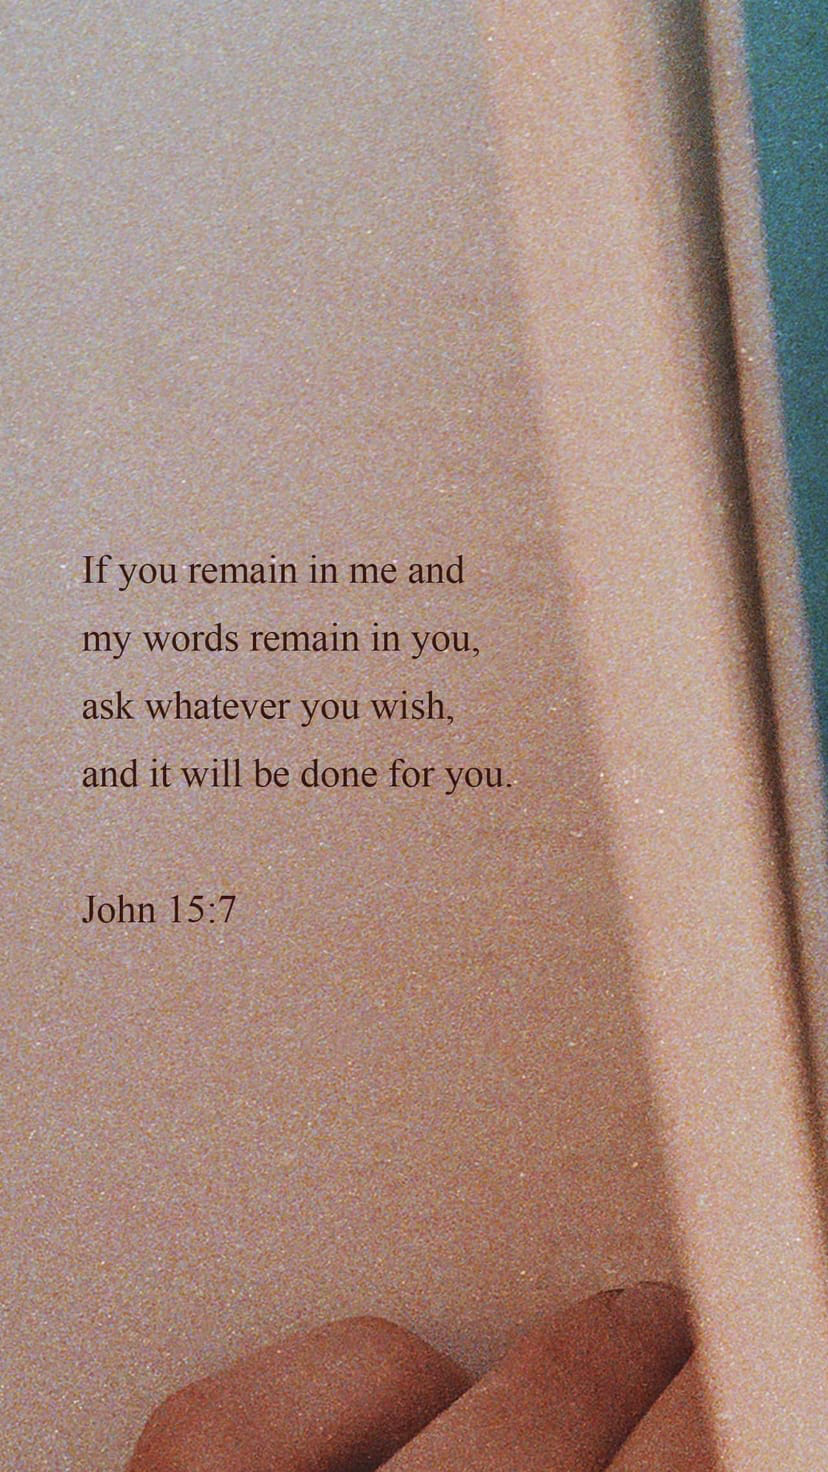 John 15:7 If you abide in me, and my words abide in you, ask whatever you wish, and it will be done for you.   English Standard Version 2016 (ESV)   Download The Bible App Now